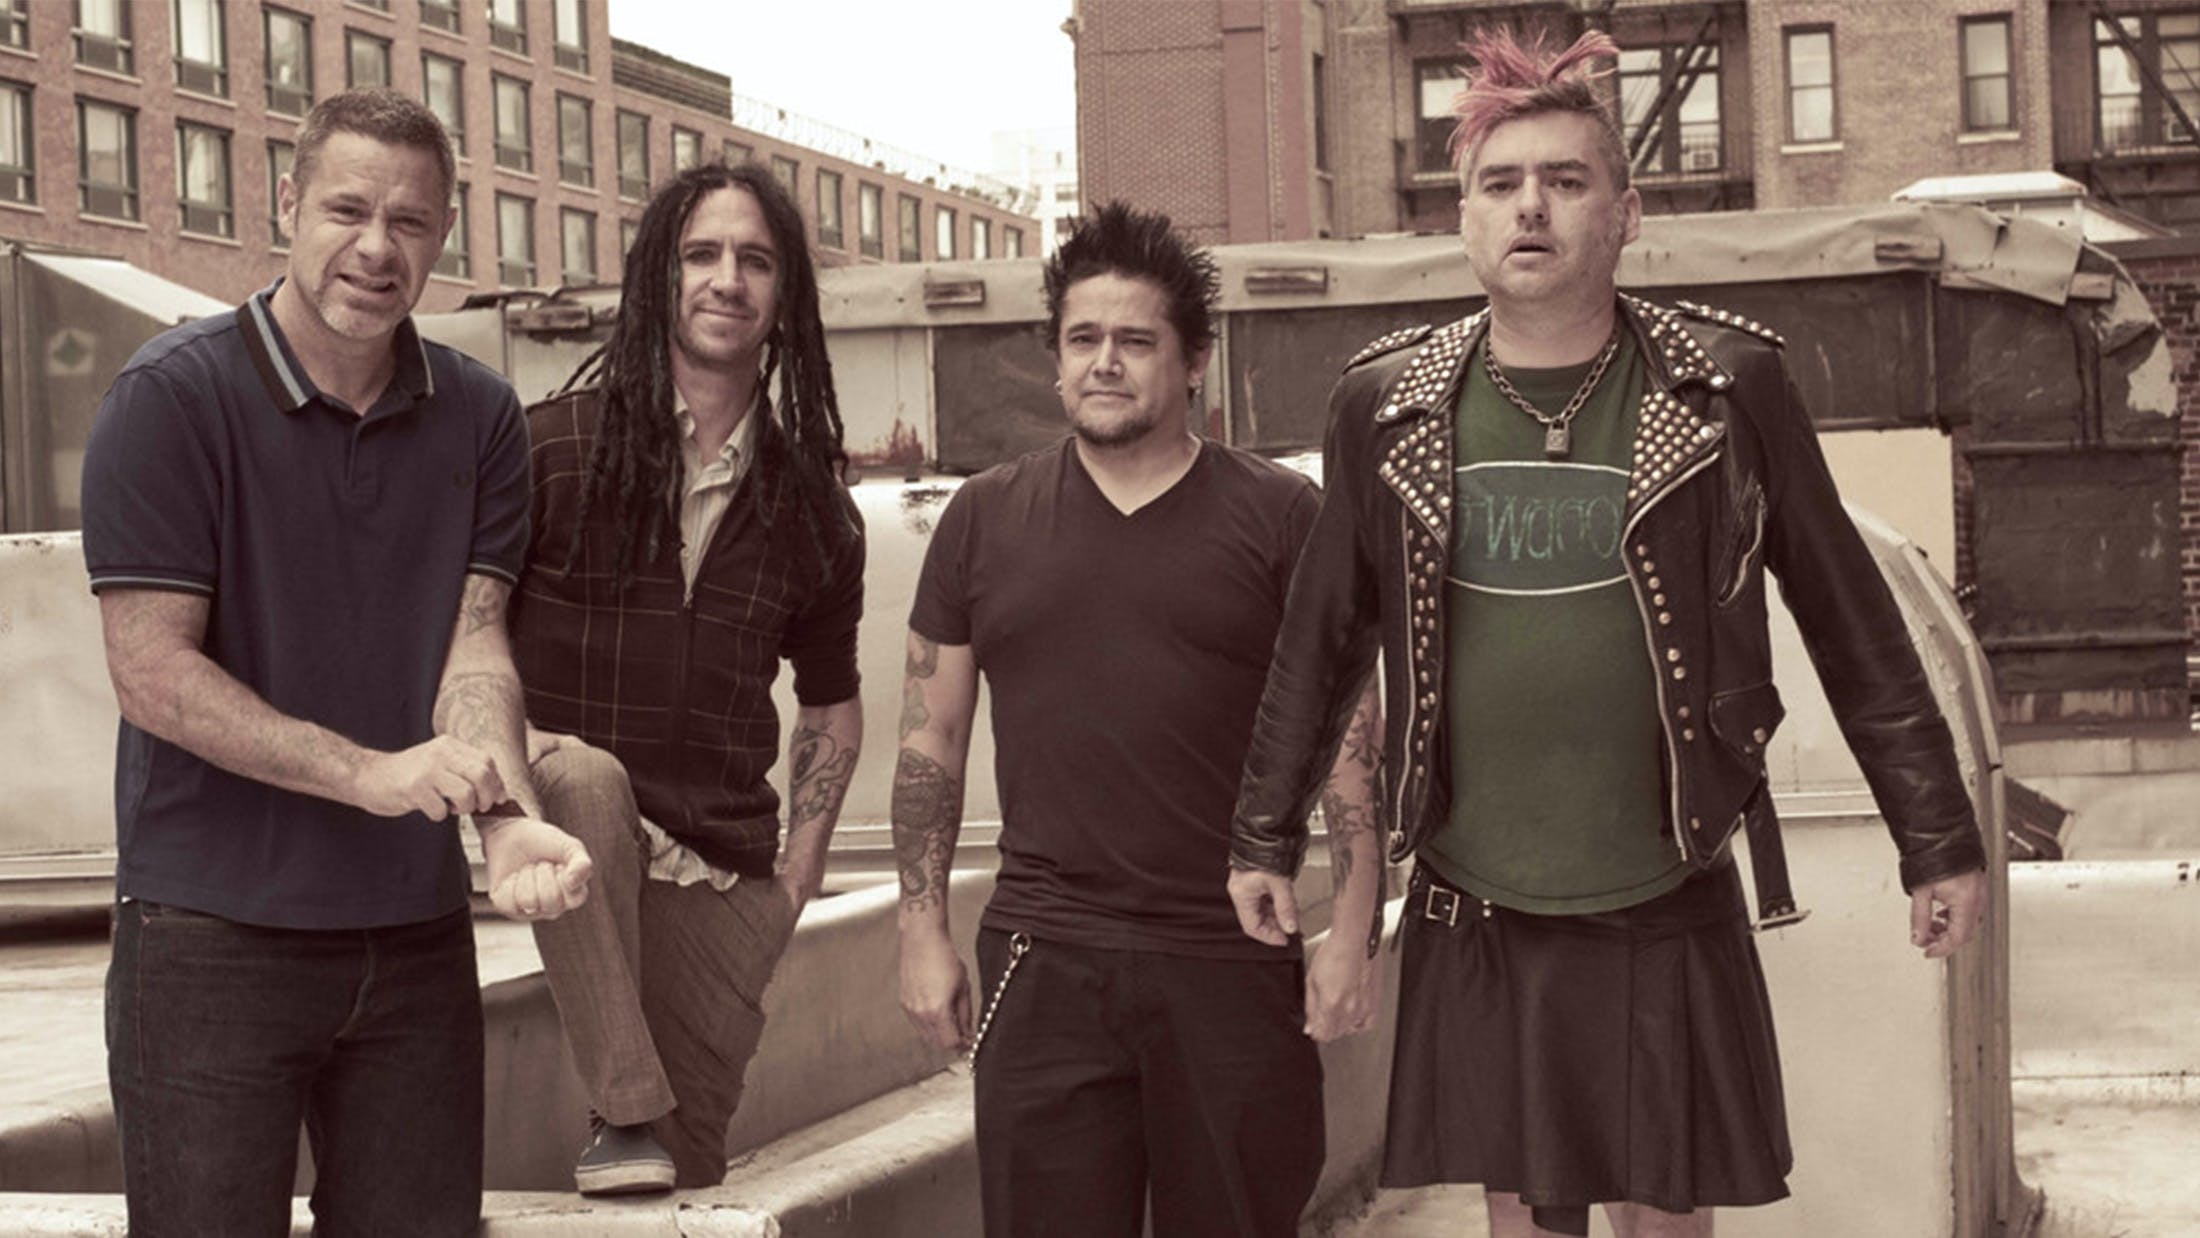 NOFX Seemingly Banned From Playing Larger Venues In The U.S.